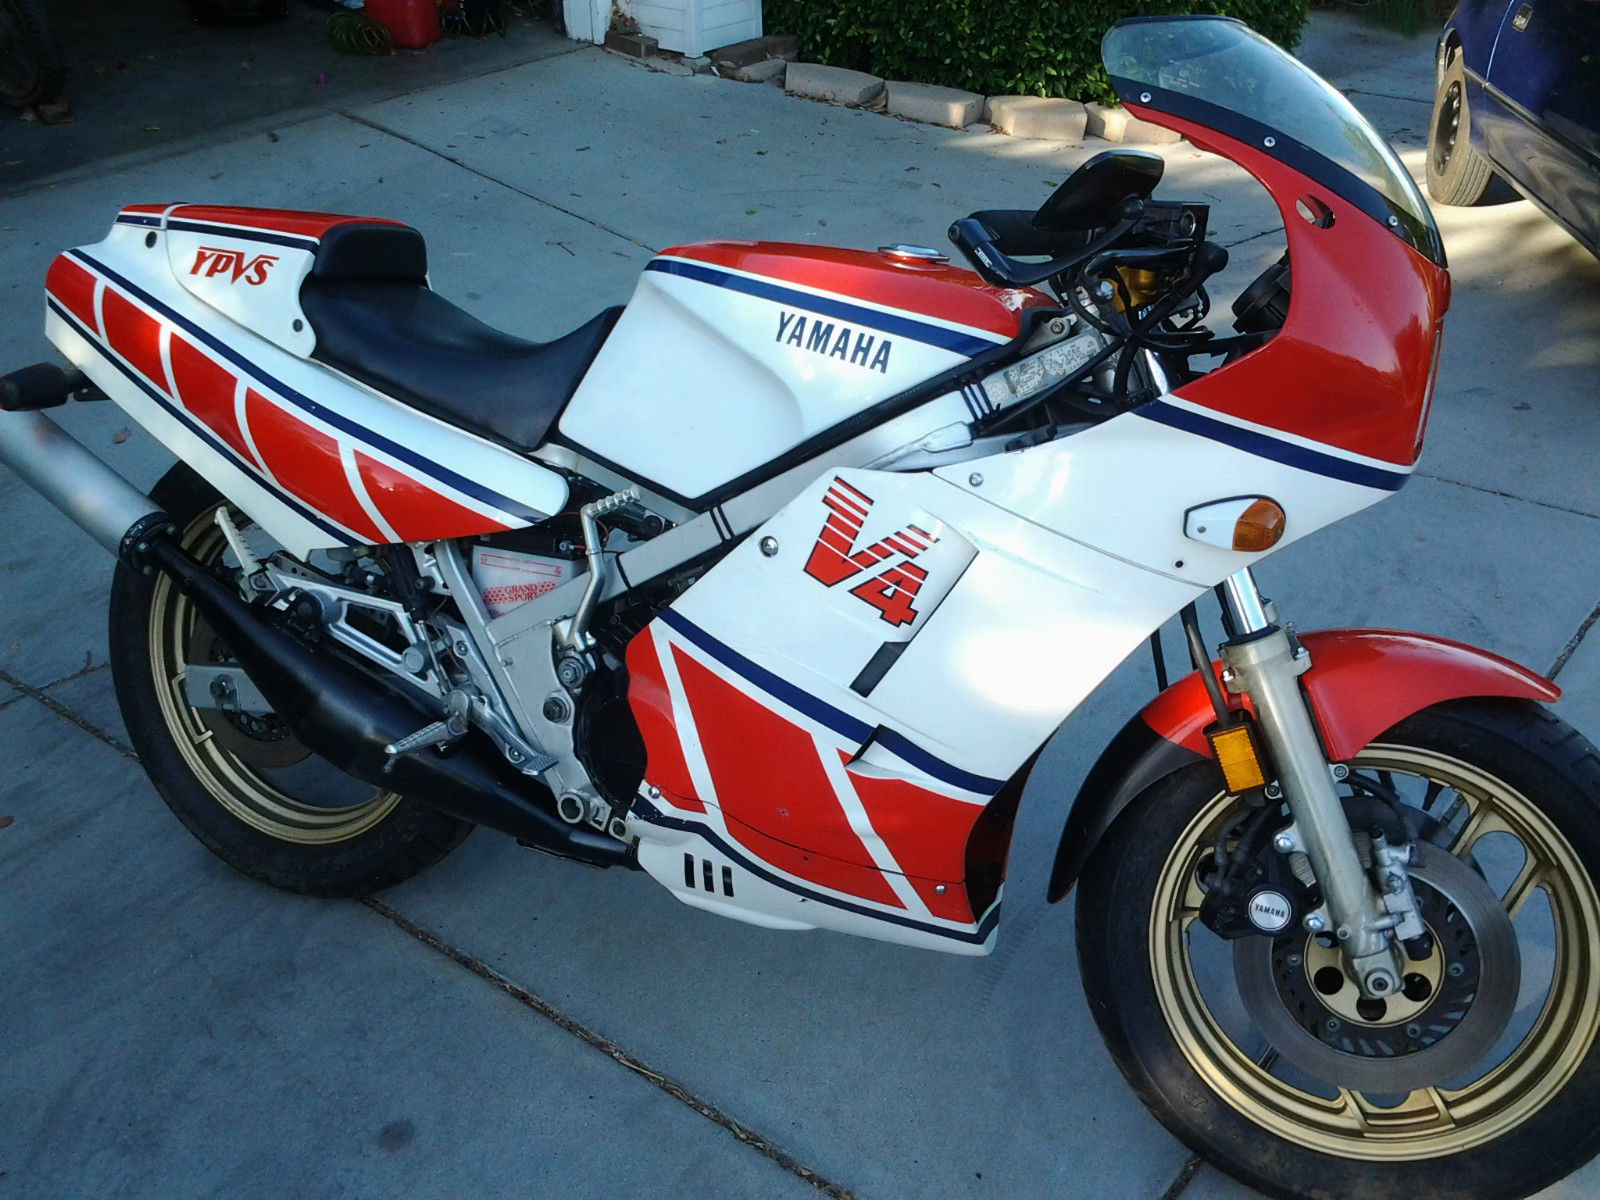 V4 race replica 1985 yamaha rz500 for sale rare for Yamaha rz for sale